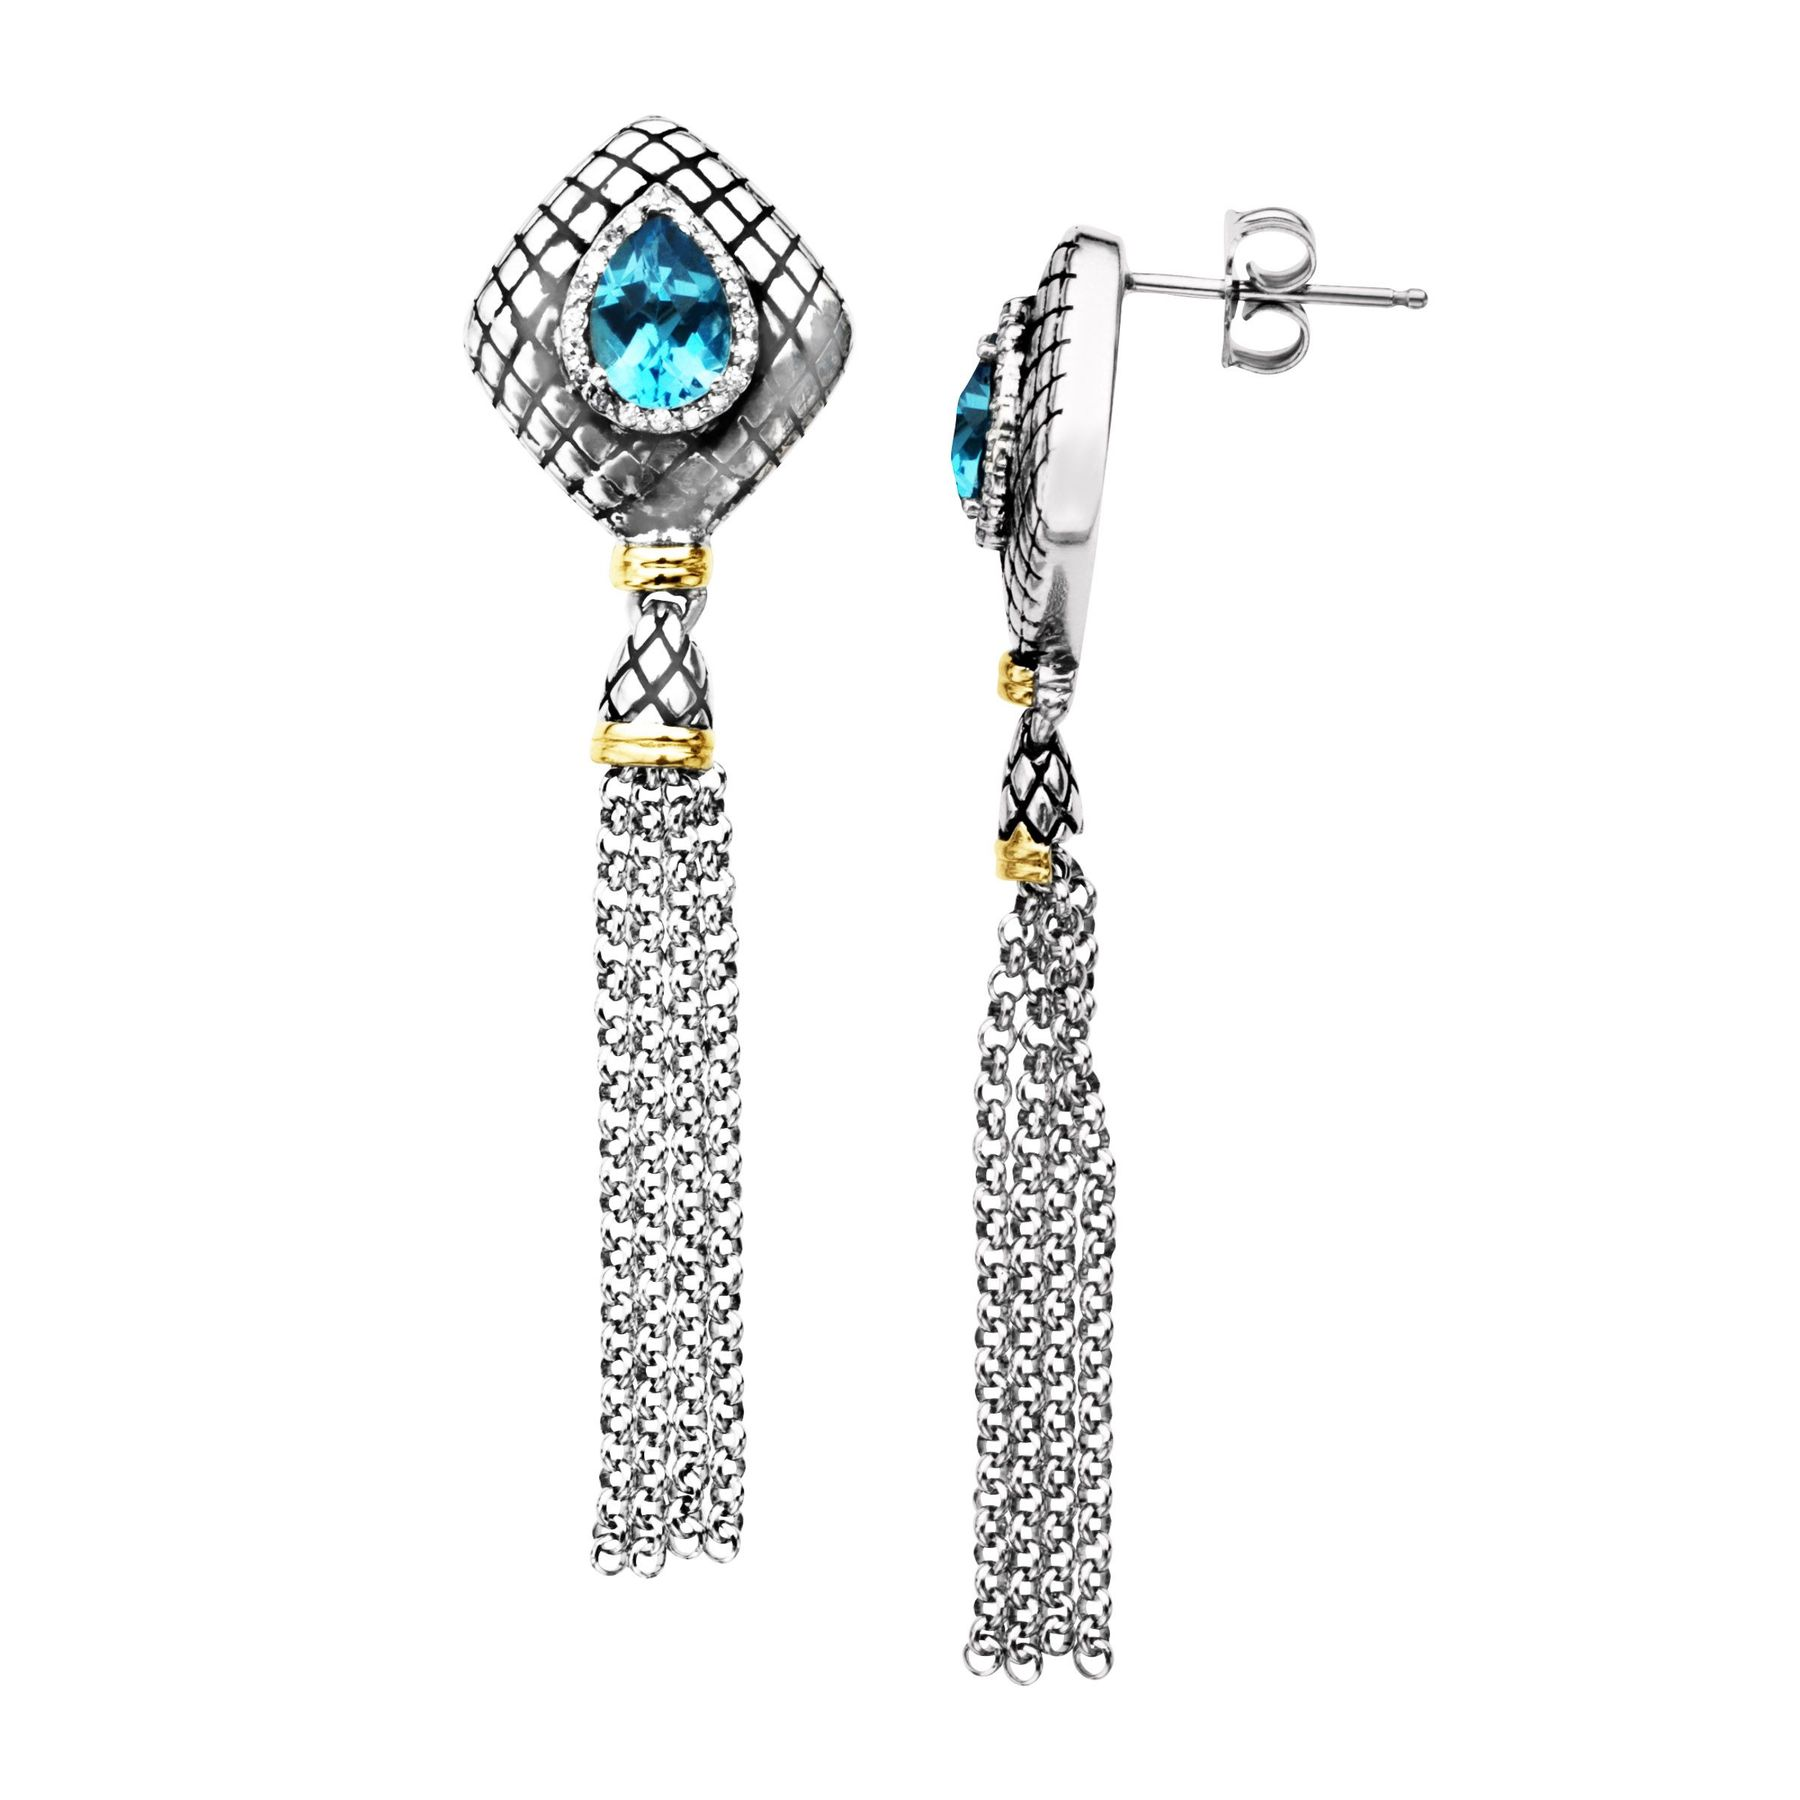 view london and l silver blue sterling earring topaz dia gold yellow stud earrings larger